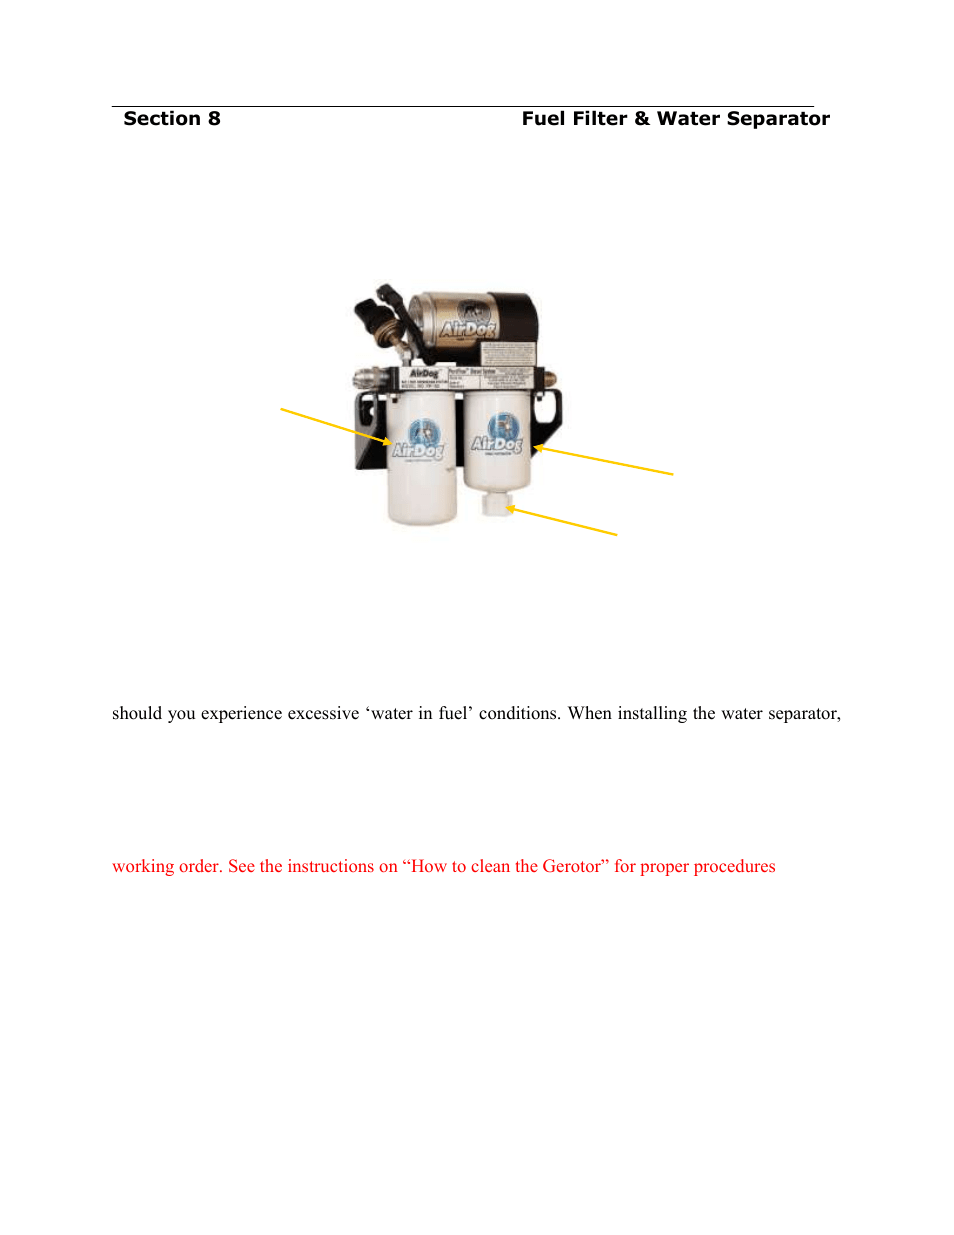 hight resolution of filter service recommendations pureflow airdog df 165 4g gm duramax 2015 user manual page 18 23